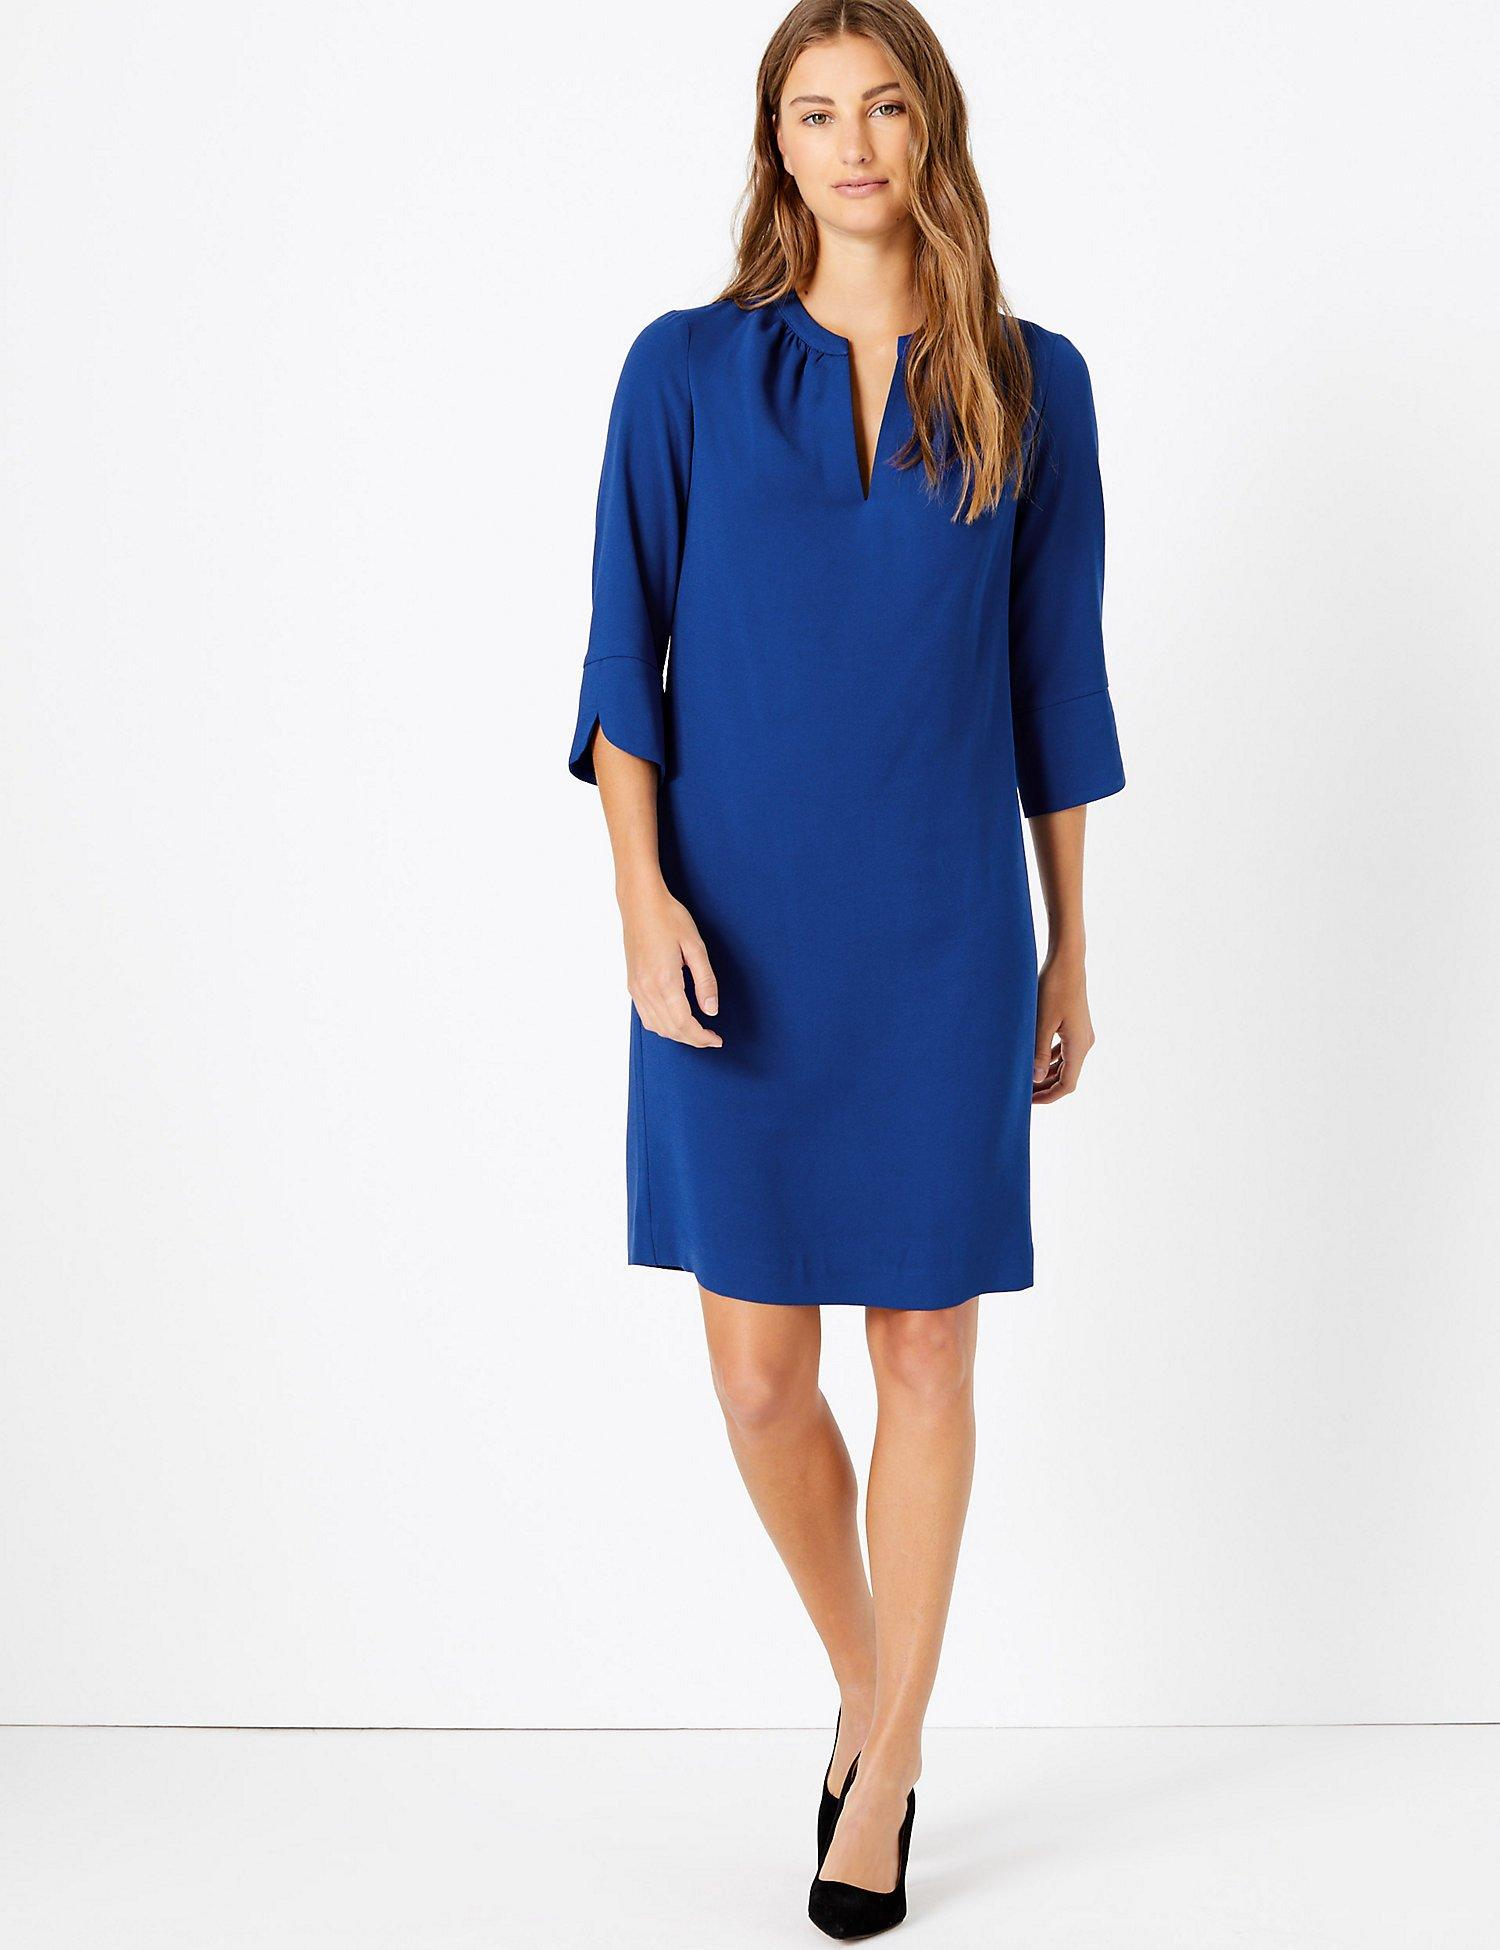 """Titled the """"Smart Set Capsule Collection,"""" the workwear pieces include a <a href=""""https://www.marksandspencer.com/us/crepe-shift-dress/p/P60277644.html"""" rel=""""nofollow noopener"""" target=""""_blank"""" data-ylk=""""slk:crepe shift dress from Marks & Spencer"""" class=""""link rapid-noclick-resp"""">crepe shift dress from Marks & Spencer</a> which retails for just $32.50 and is available in three colors: black, red and blue. Described as a """"staple in your autumn wardrobe,"""" the knee-length dress has three-quarter length sleeves with a split mandarin collar and is iron-free."""